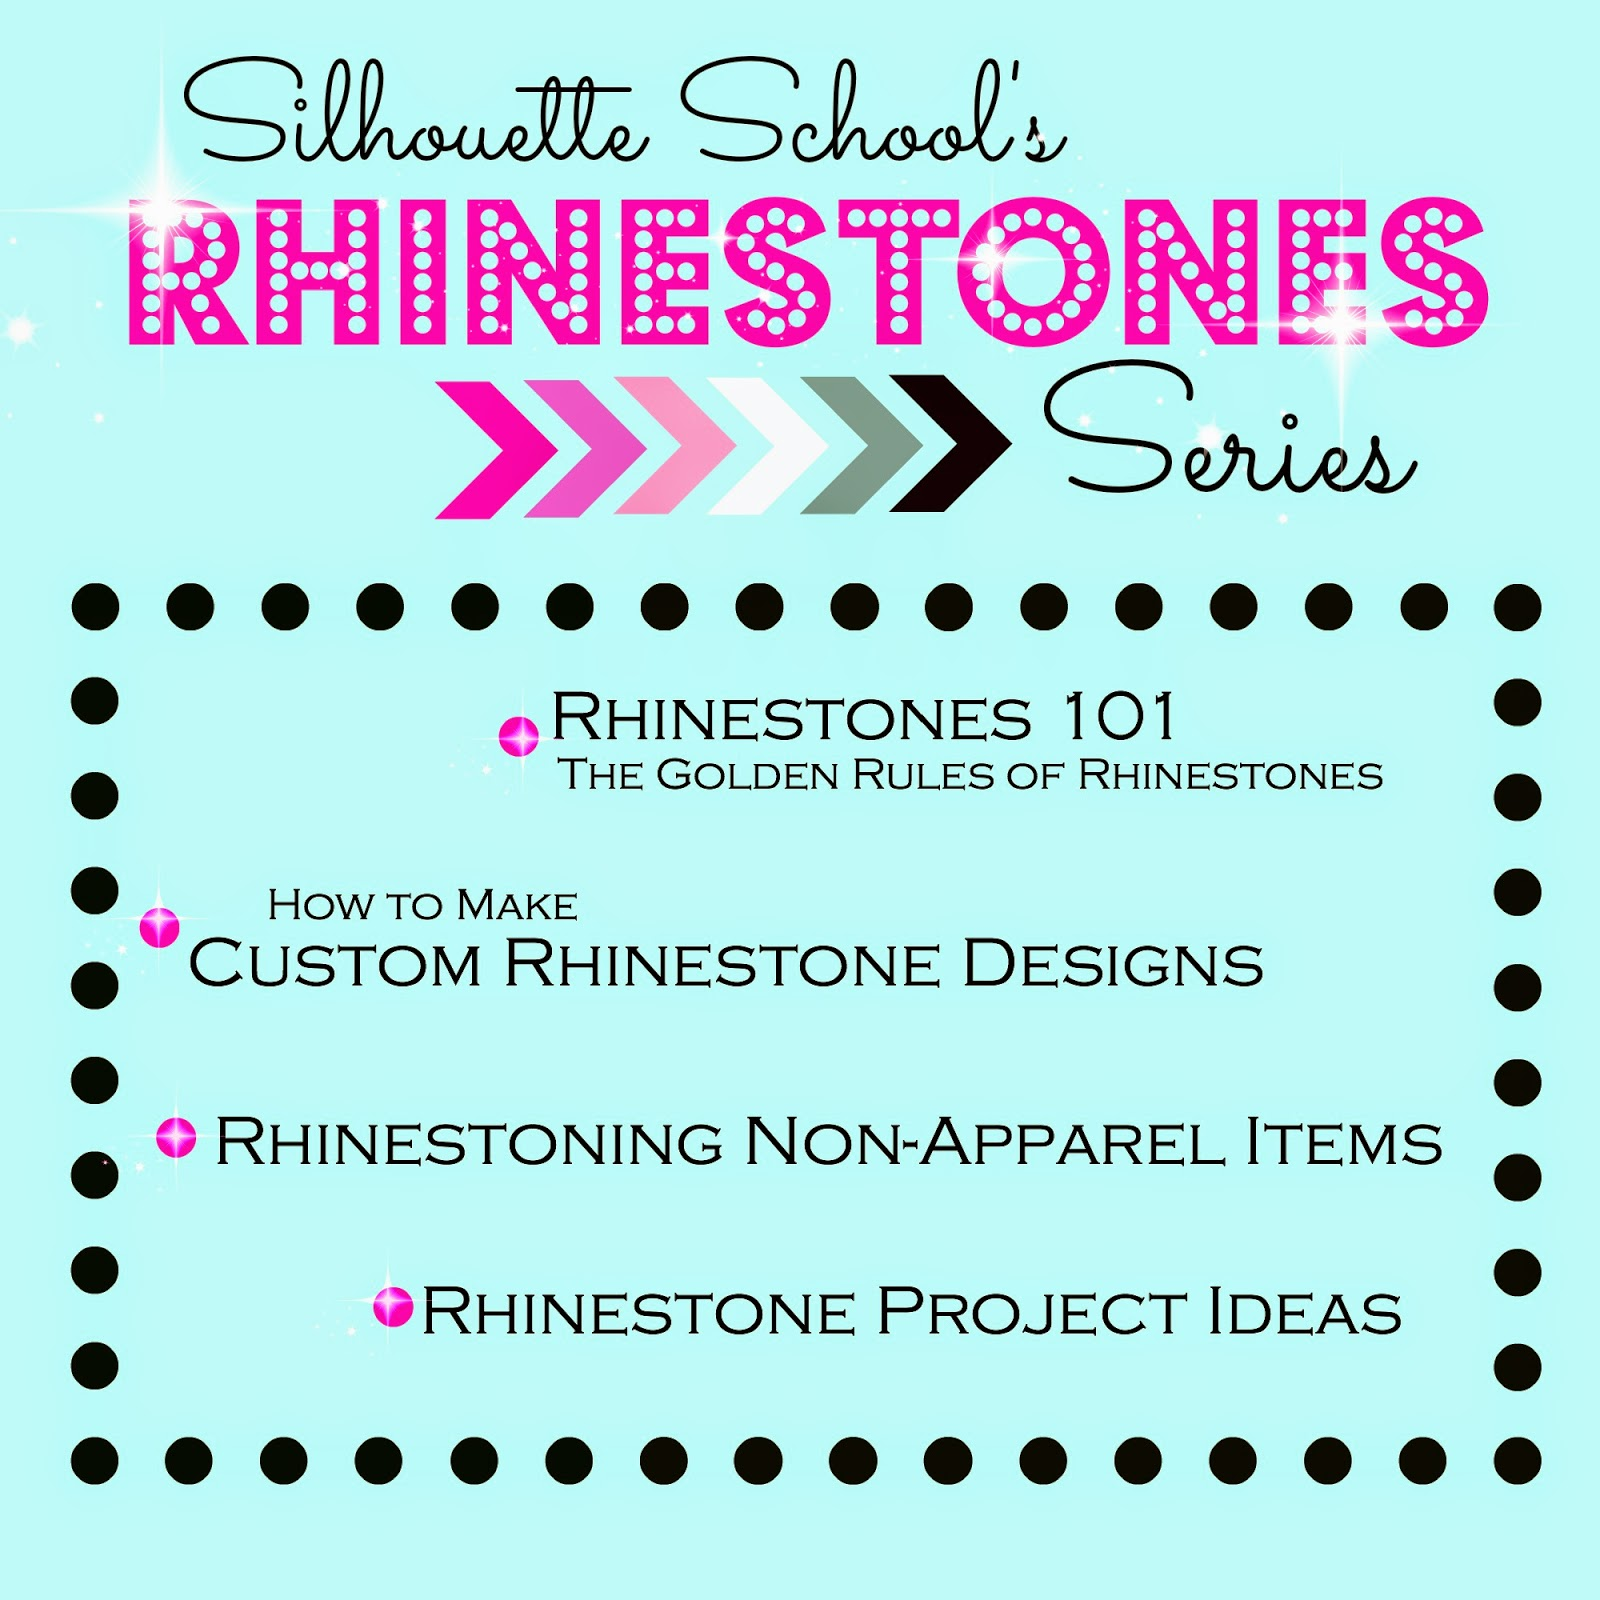 How To Make Custom Rhinestone Designs In Silhouette Studio - How to make rhinestone templates